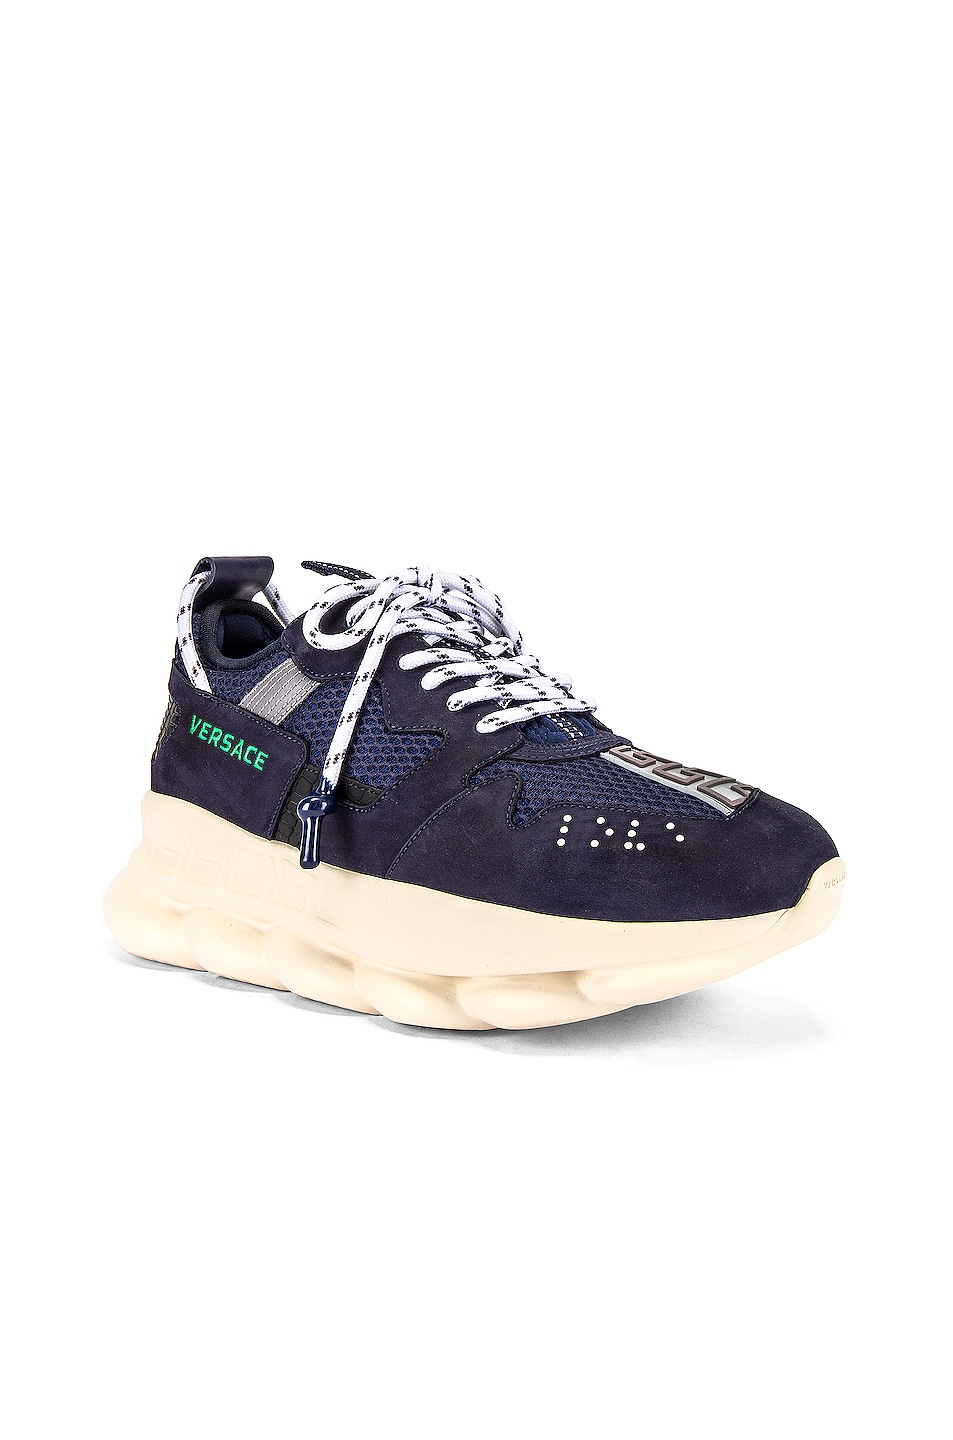 Image 1 of VERSACE Chain Reaction Sneaker in Navy